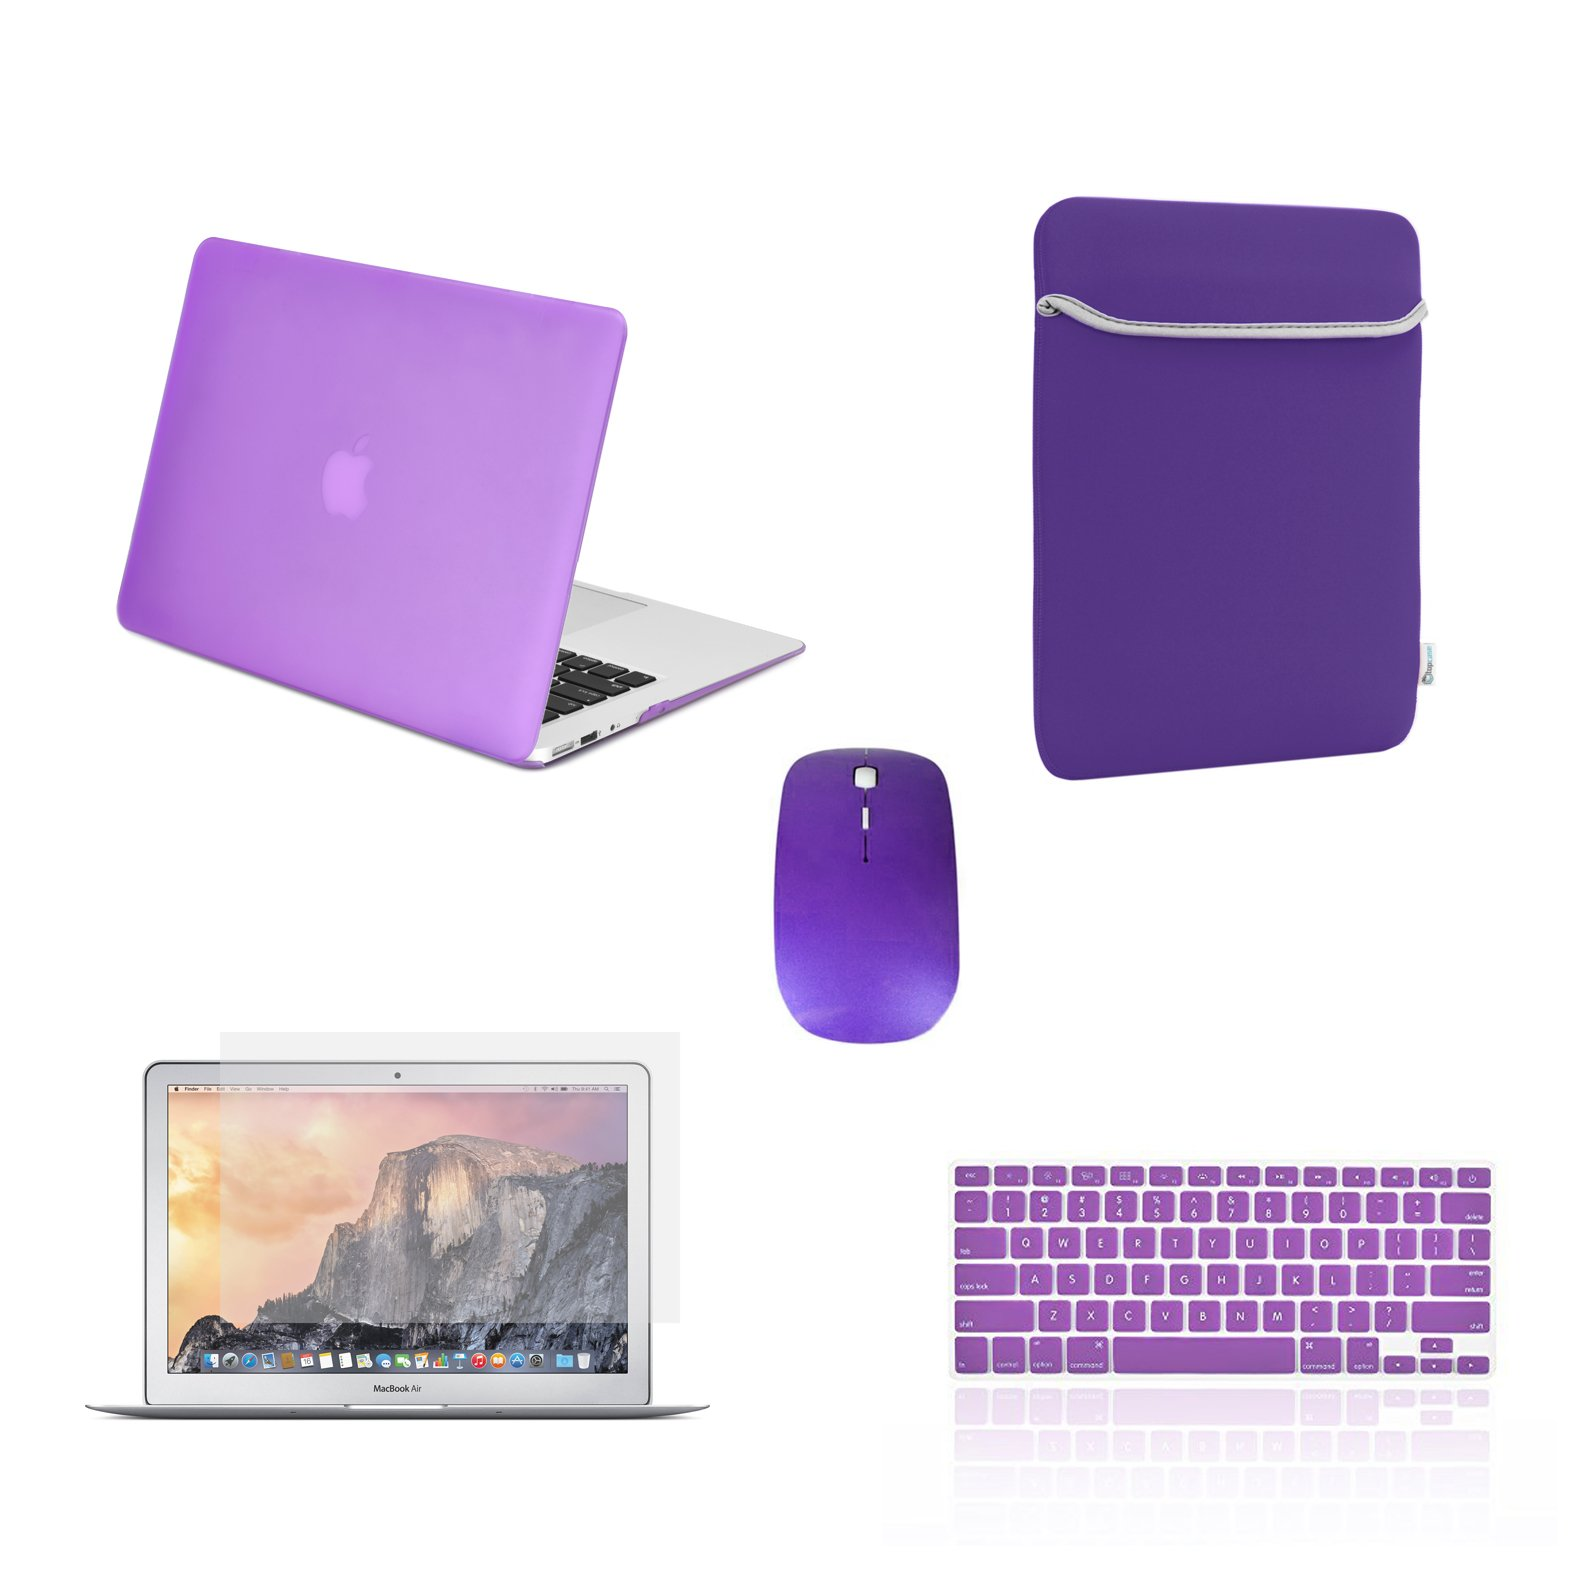 TOP CASE - 5 in 1 Bundle Deal Rubberized Hard Case, Keyboard Cover, Screen Protector, Sleeve Bag and Mouse Compatible with Apple MacBook Air 13'' A1369 & A1466 - Purple